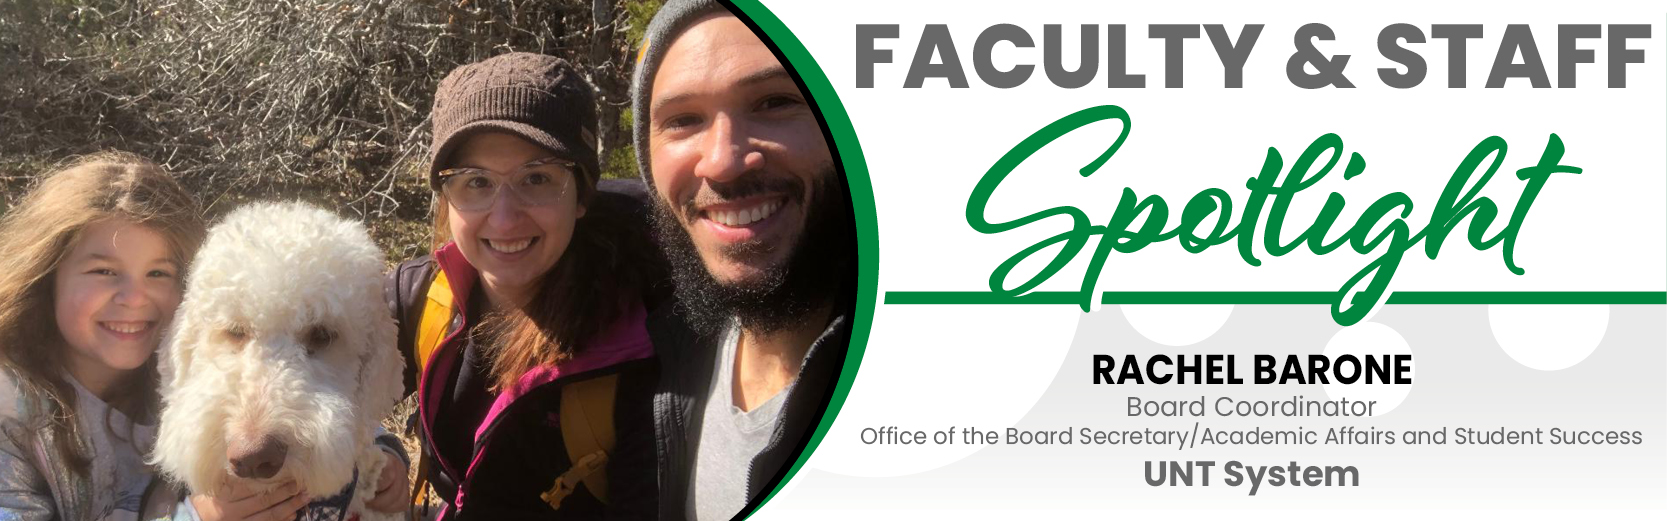 Faculty & Staff Spotlight: Rachel Barone, UNT System